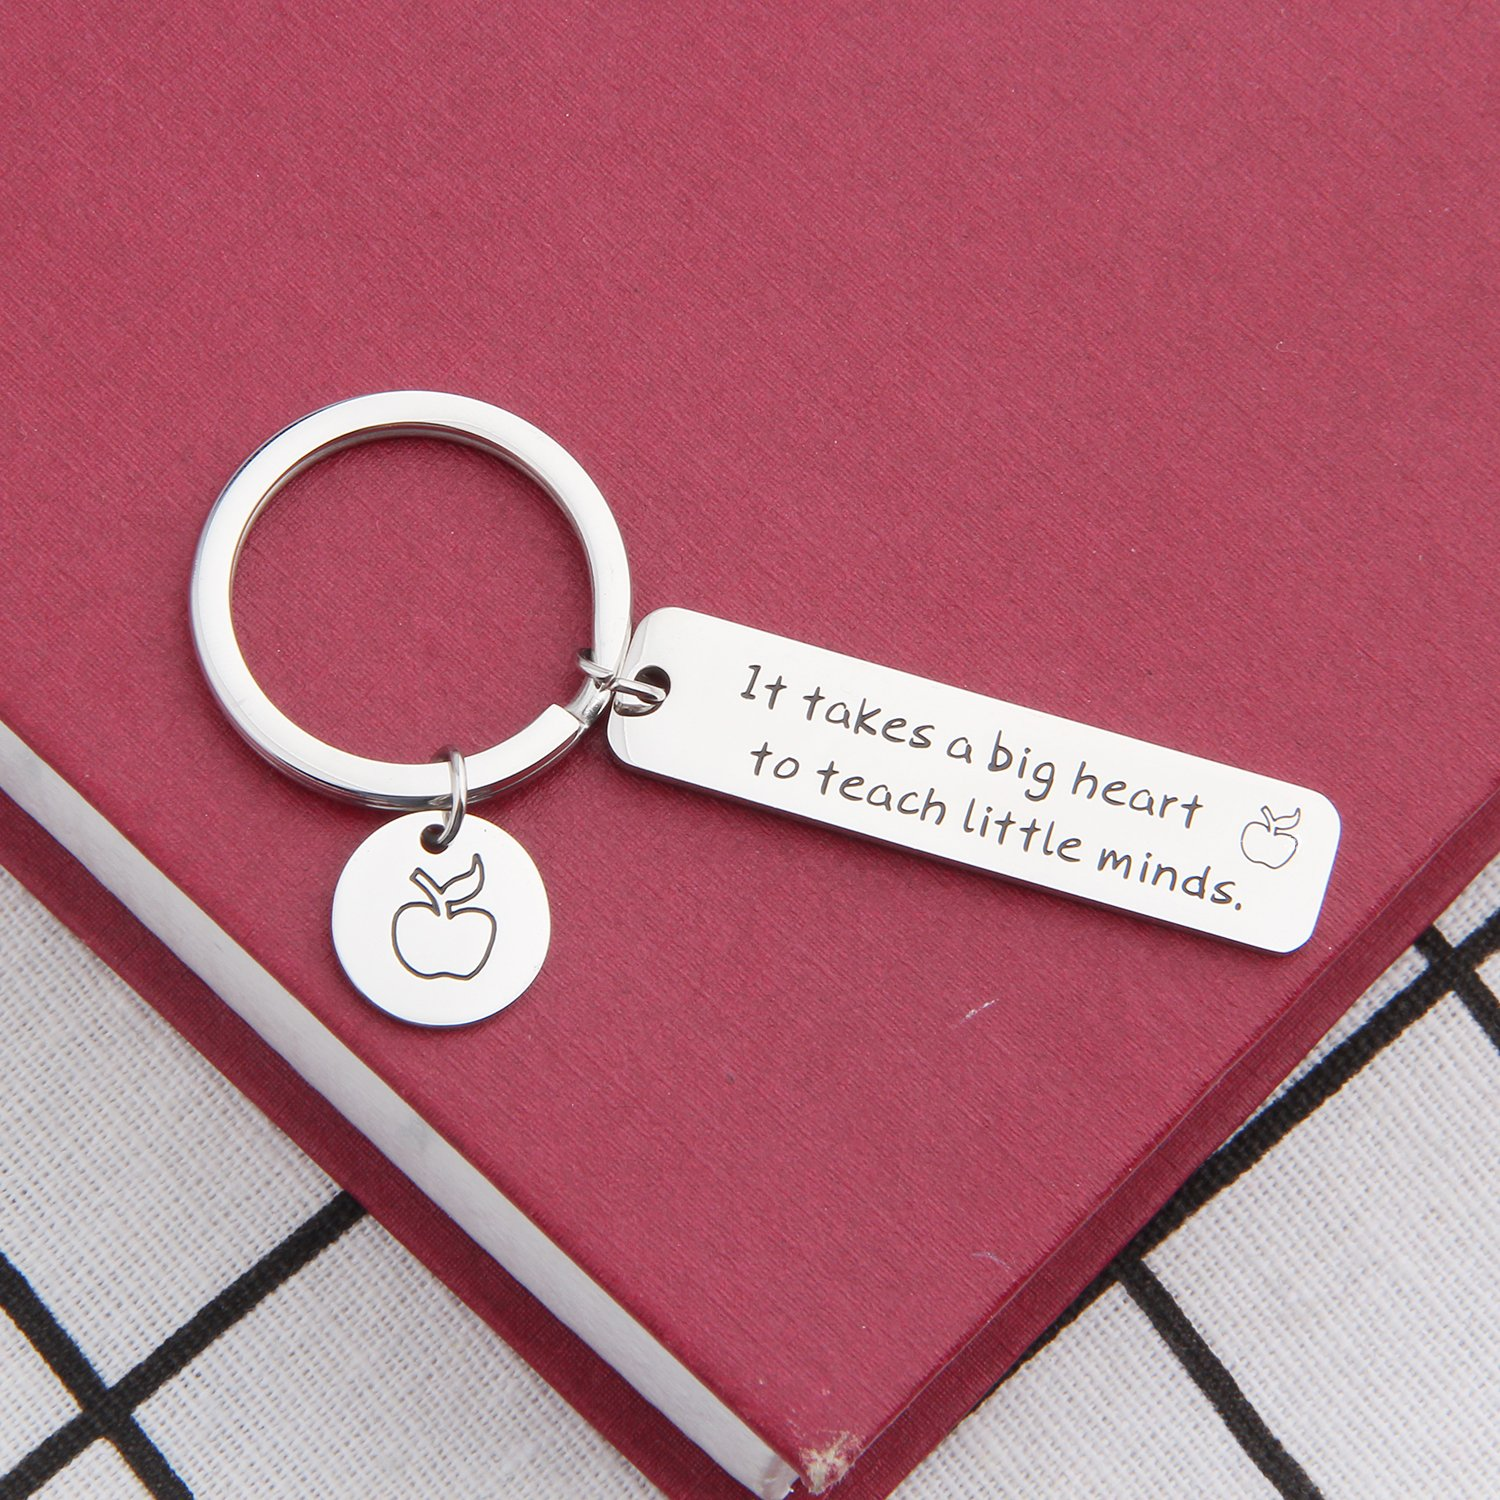 ENSIANTH It Takes a Big Heart to Teach Little Minds Adjustable Bracelet Gift for Teacher-Teacher Appreciation Gift with Apple Charm